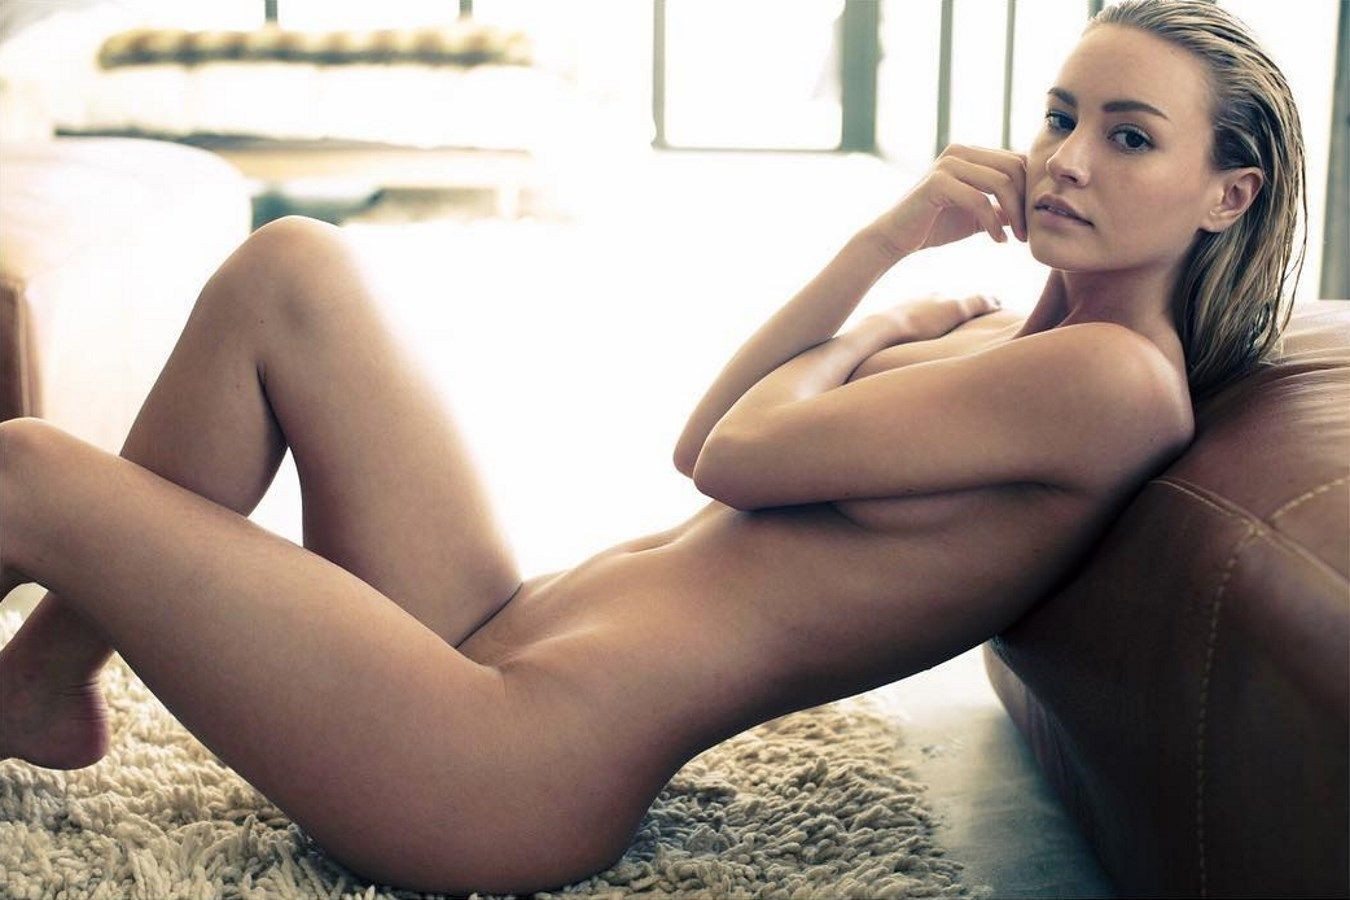 Brianne leary nude